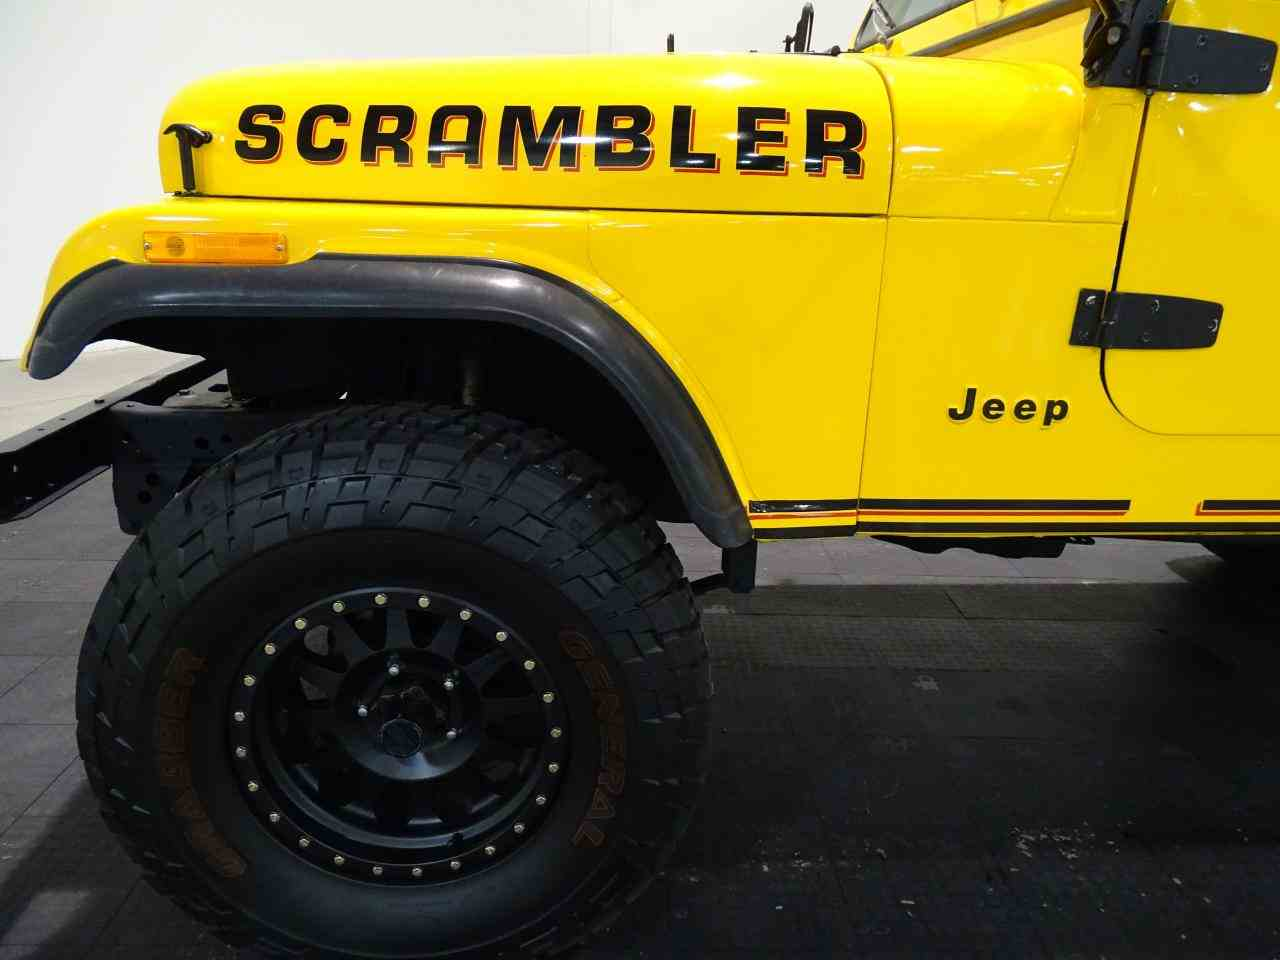 Large Picture of '85 Jeep CJ8 Scrambler located in Texas - $32,595.00 - KEST